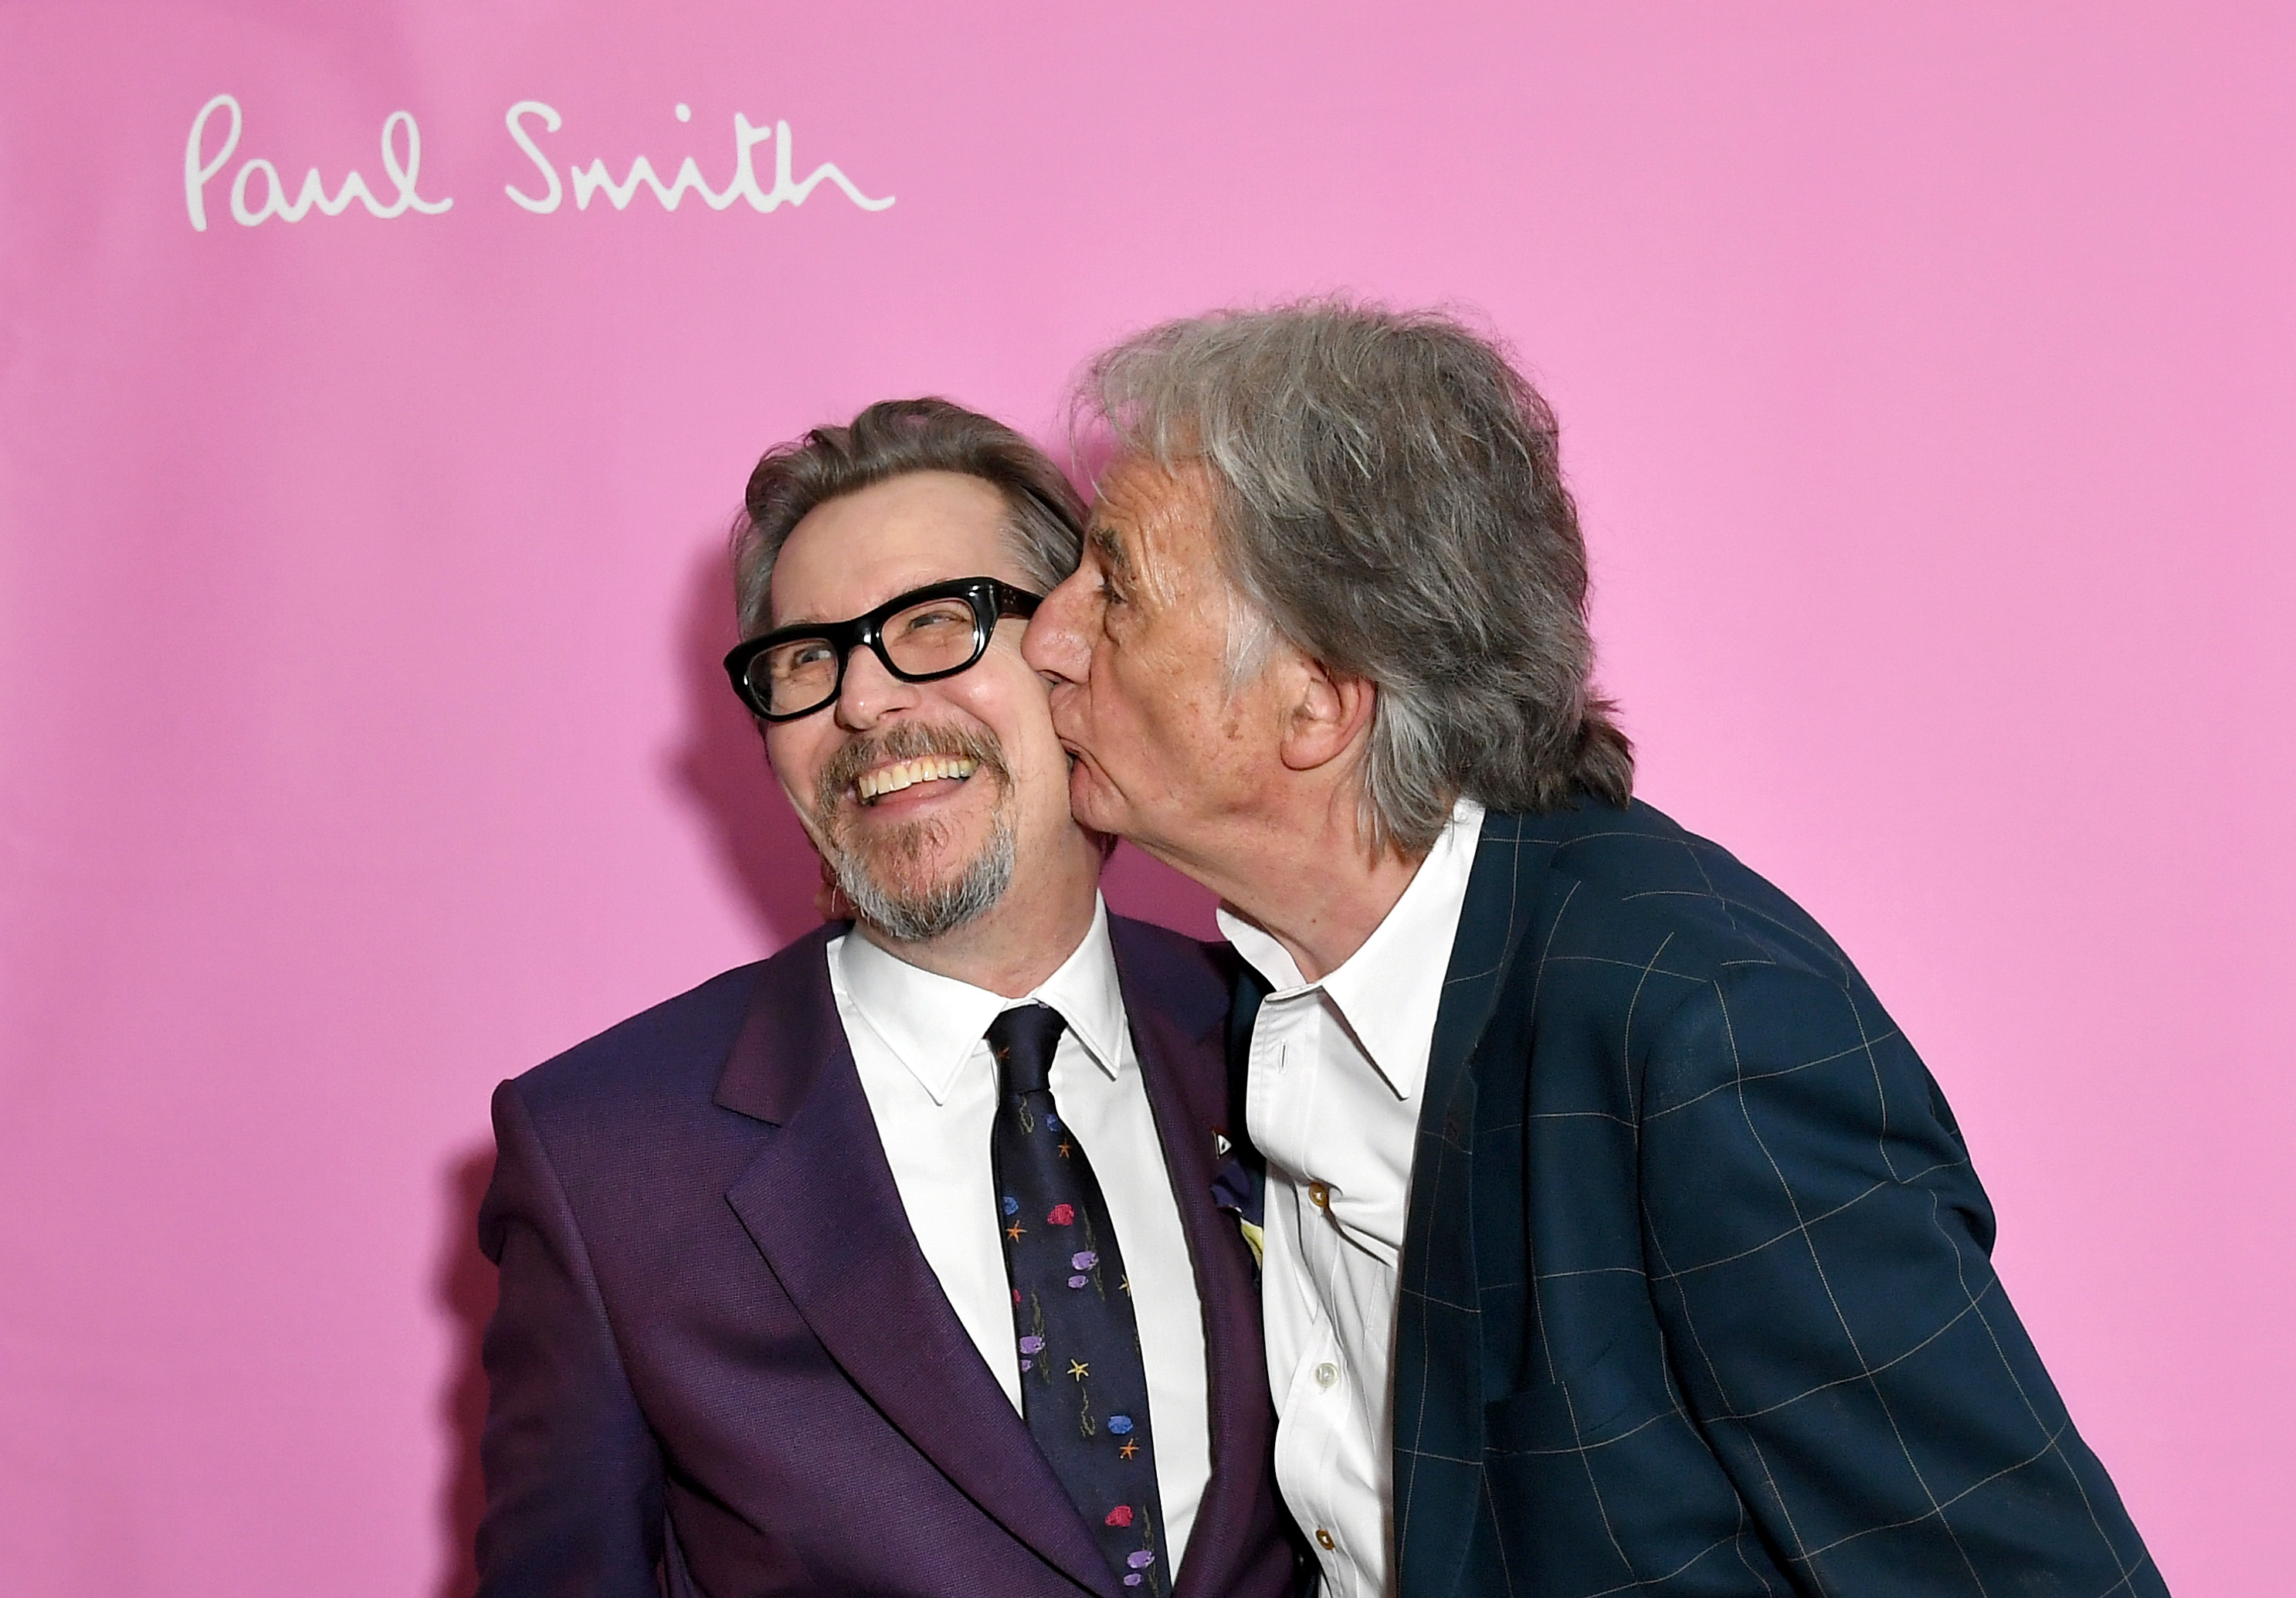 Gary Oldman and Paul SmithSir Paul Smith x Gary Oldman Cocktails Chateau Marmont, Los Angeles, USA - 10 Apr 2018